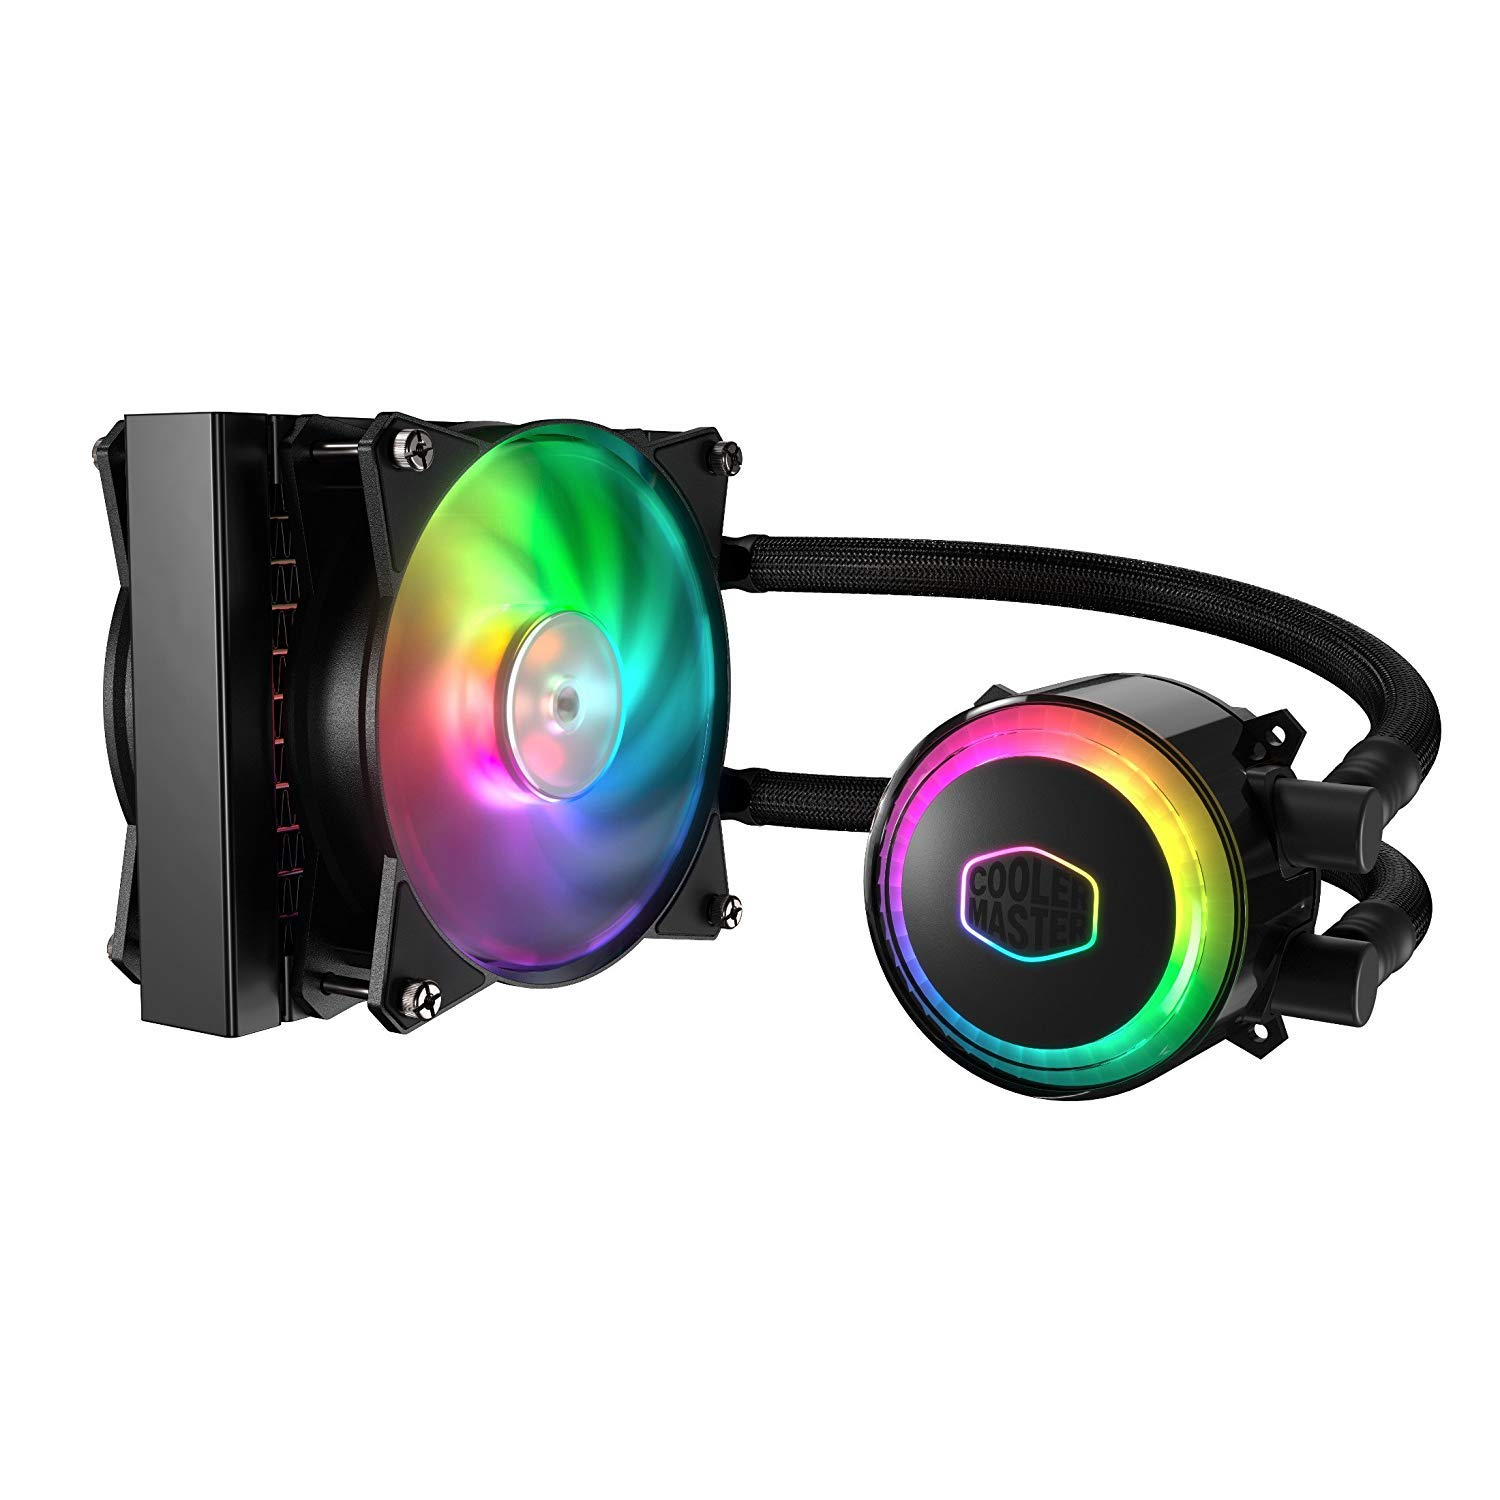 Cooler Master MasterLiquid ML120R Addressable RGB All-in-one CPU Liquid Cooler Dual Chamber Intel/AMD Support Cooling (MLX-D12M-A20PC-R1) by Cooler Master